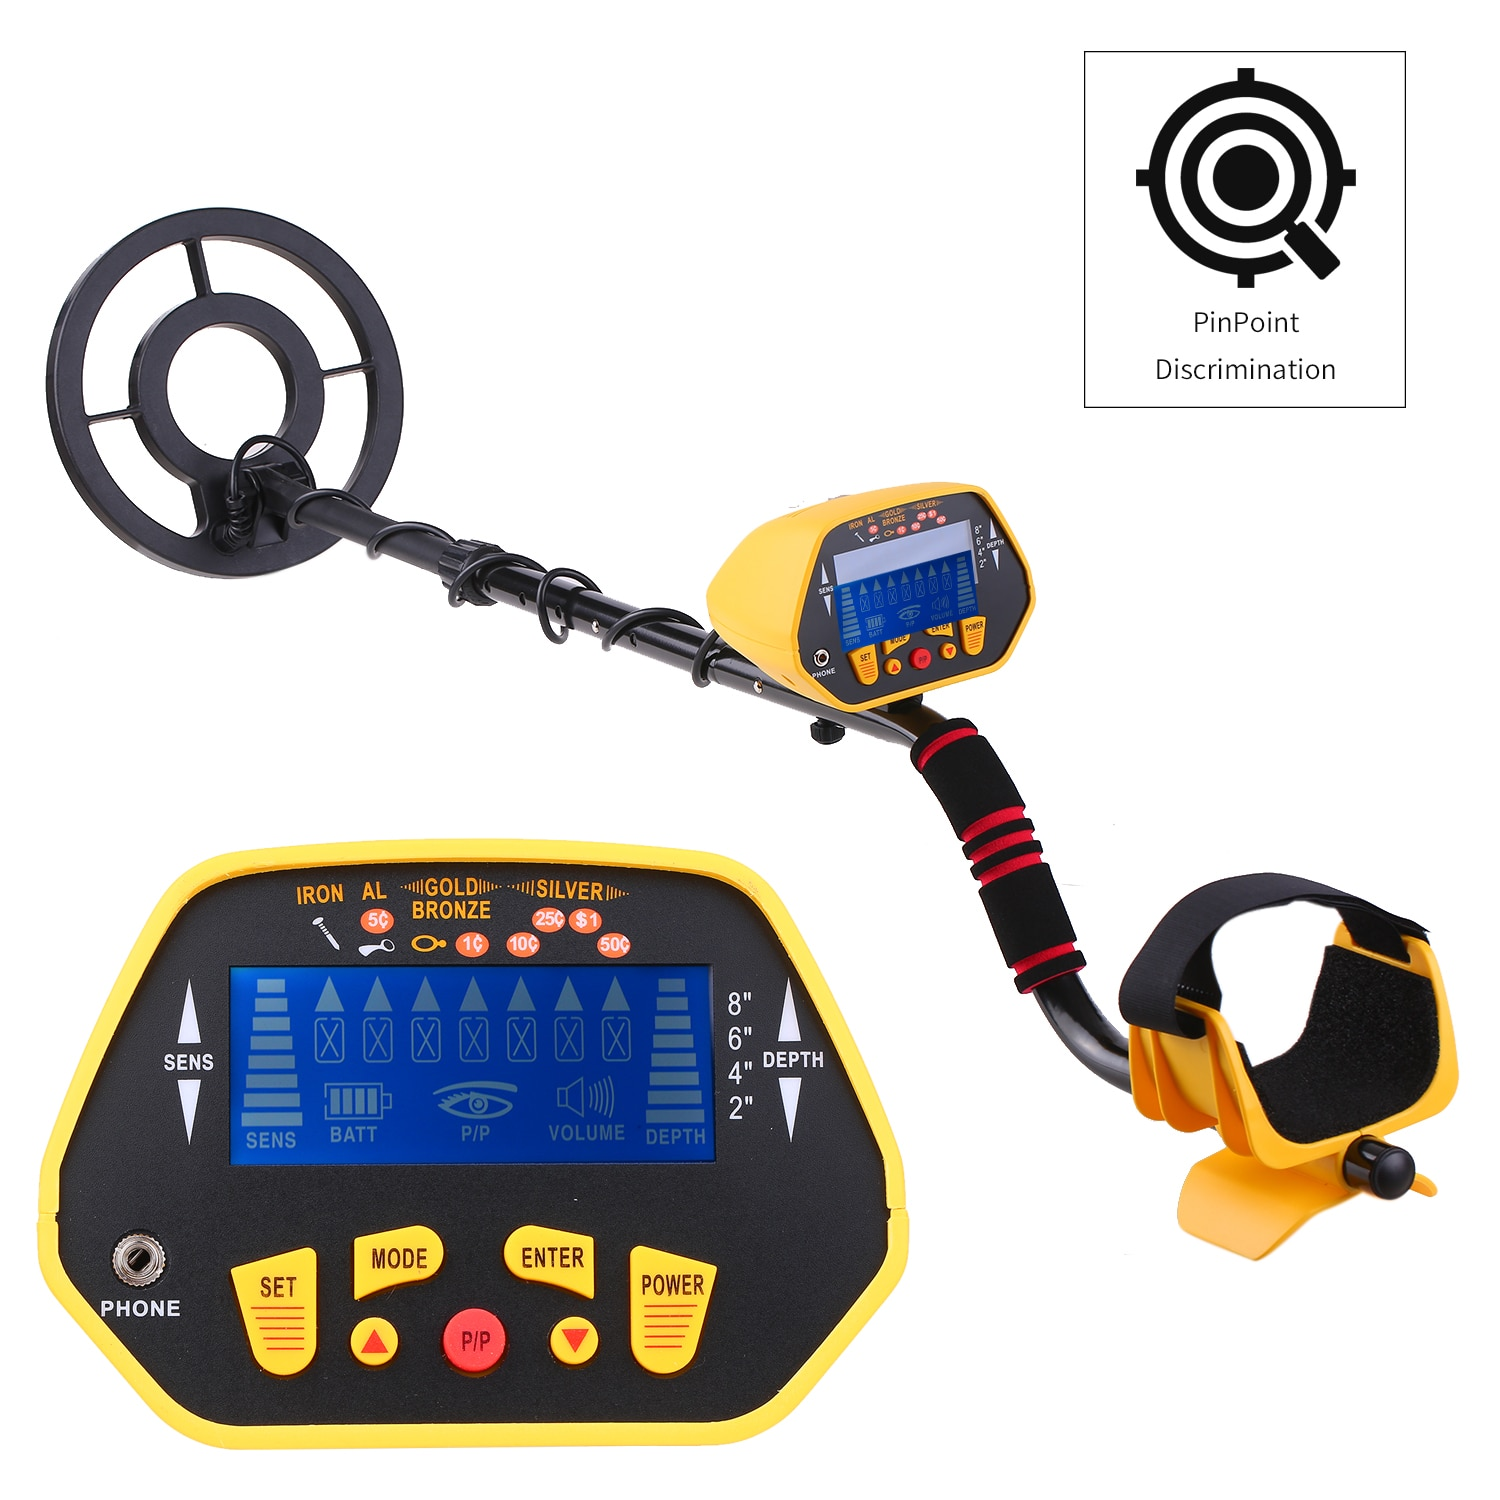 Professional Metal Detector P/P Function Disc Mode Waterproof Metal Finder GC1028 Underground Treasure Hunter